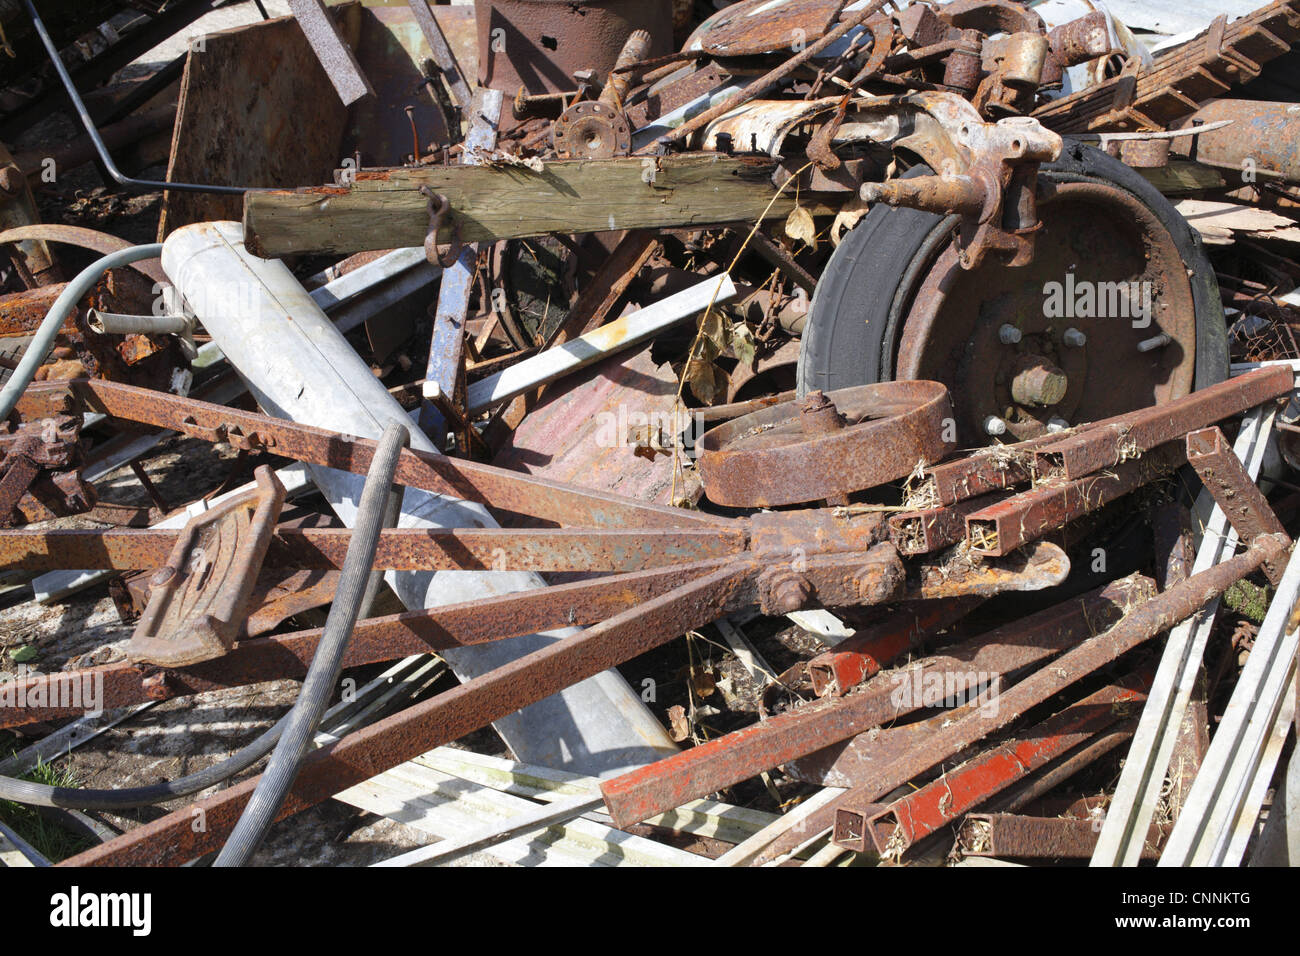 Assorted scrap metal on farm, awaiting collection for recycling, Powys, Wales, july - Stock Image